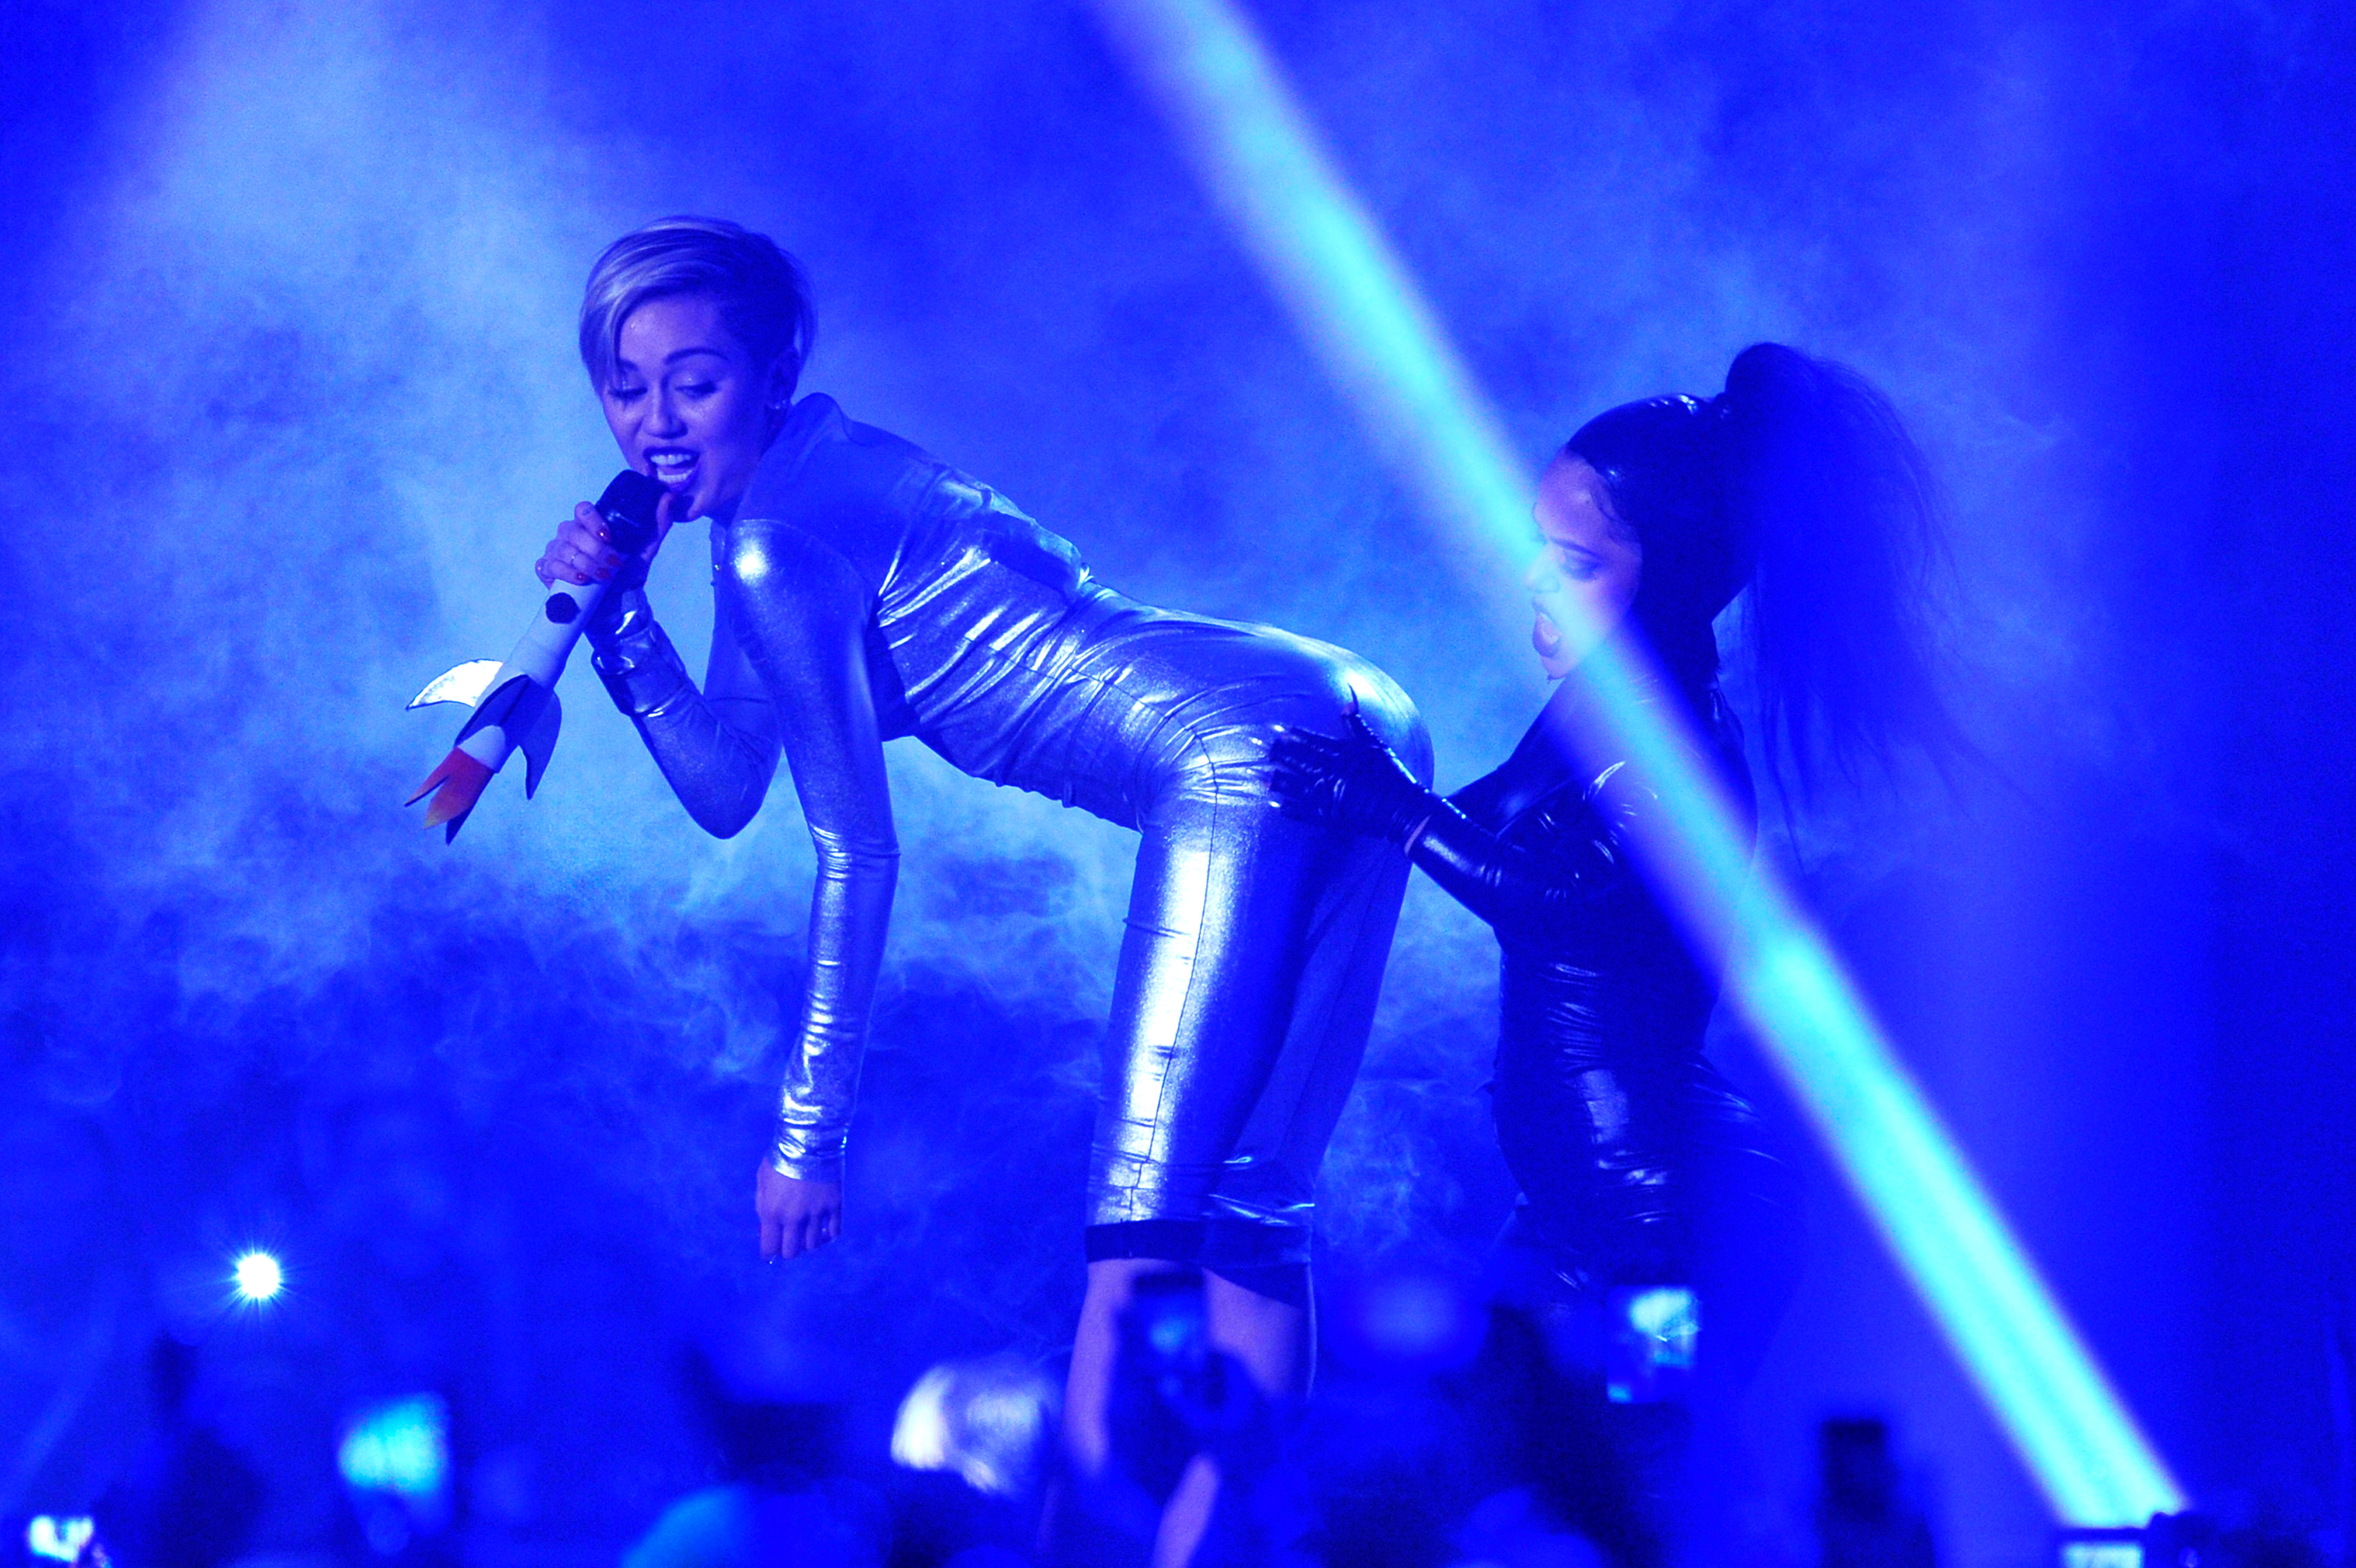 An alternative view during the MTV EMA's 2013 at the Ziggo Dome on November 10, 2013 in Amsterdam, Netherlands.